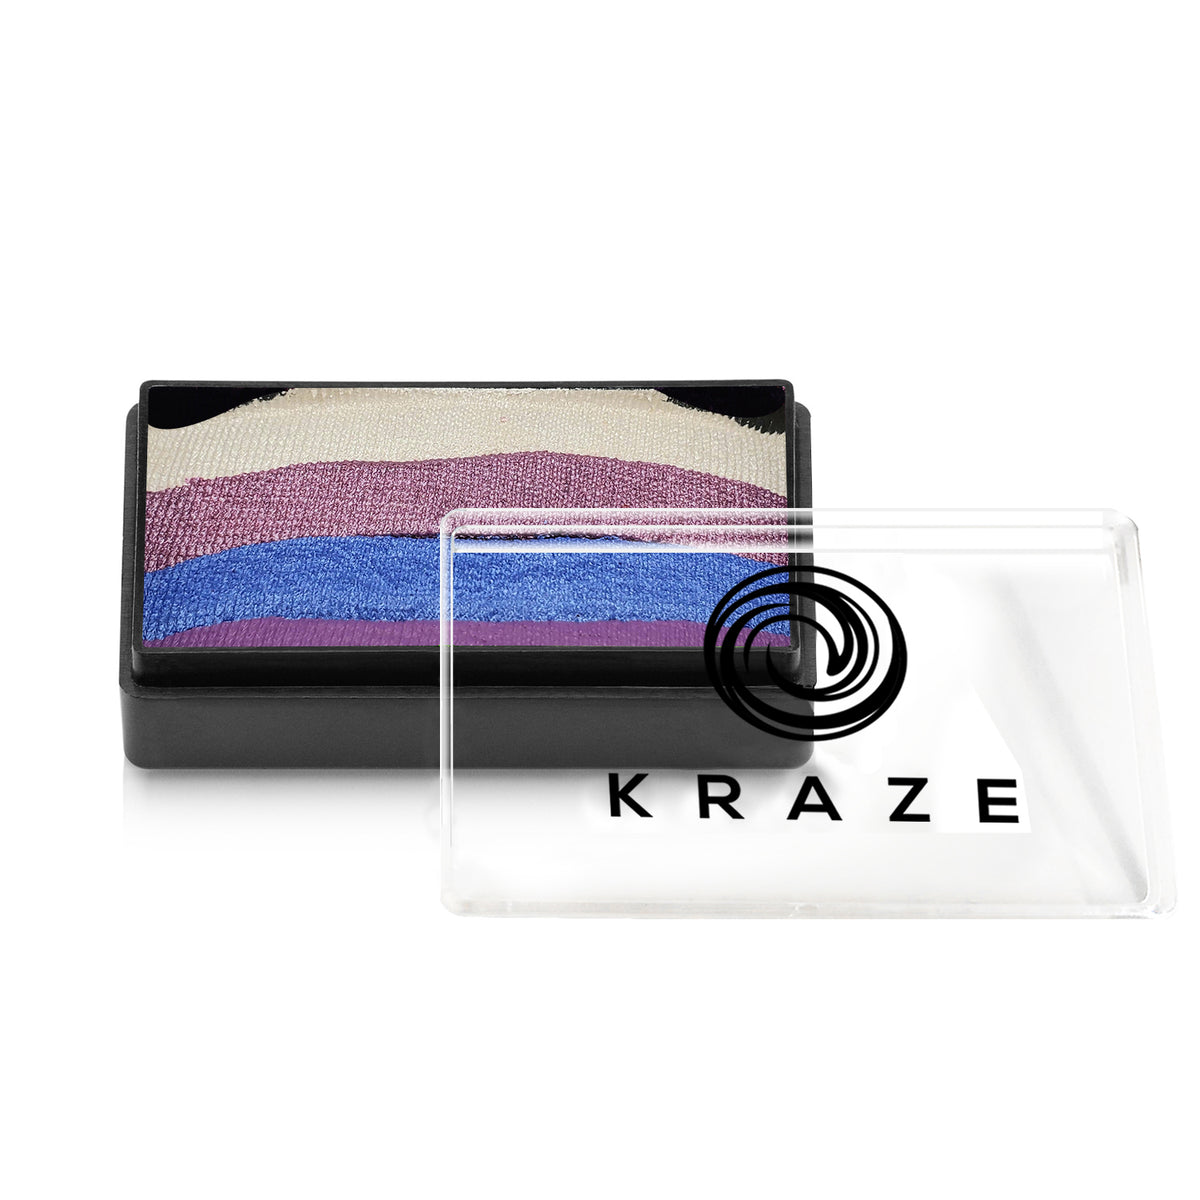 Kraze Domed One Stroke - Fairydust (25g)